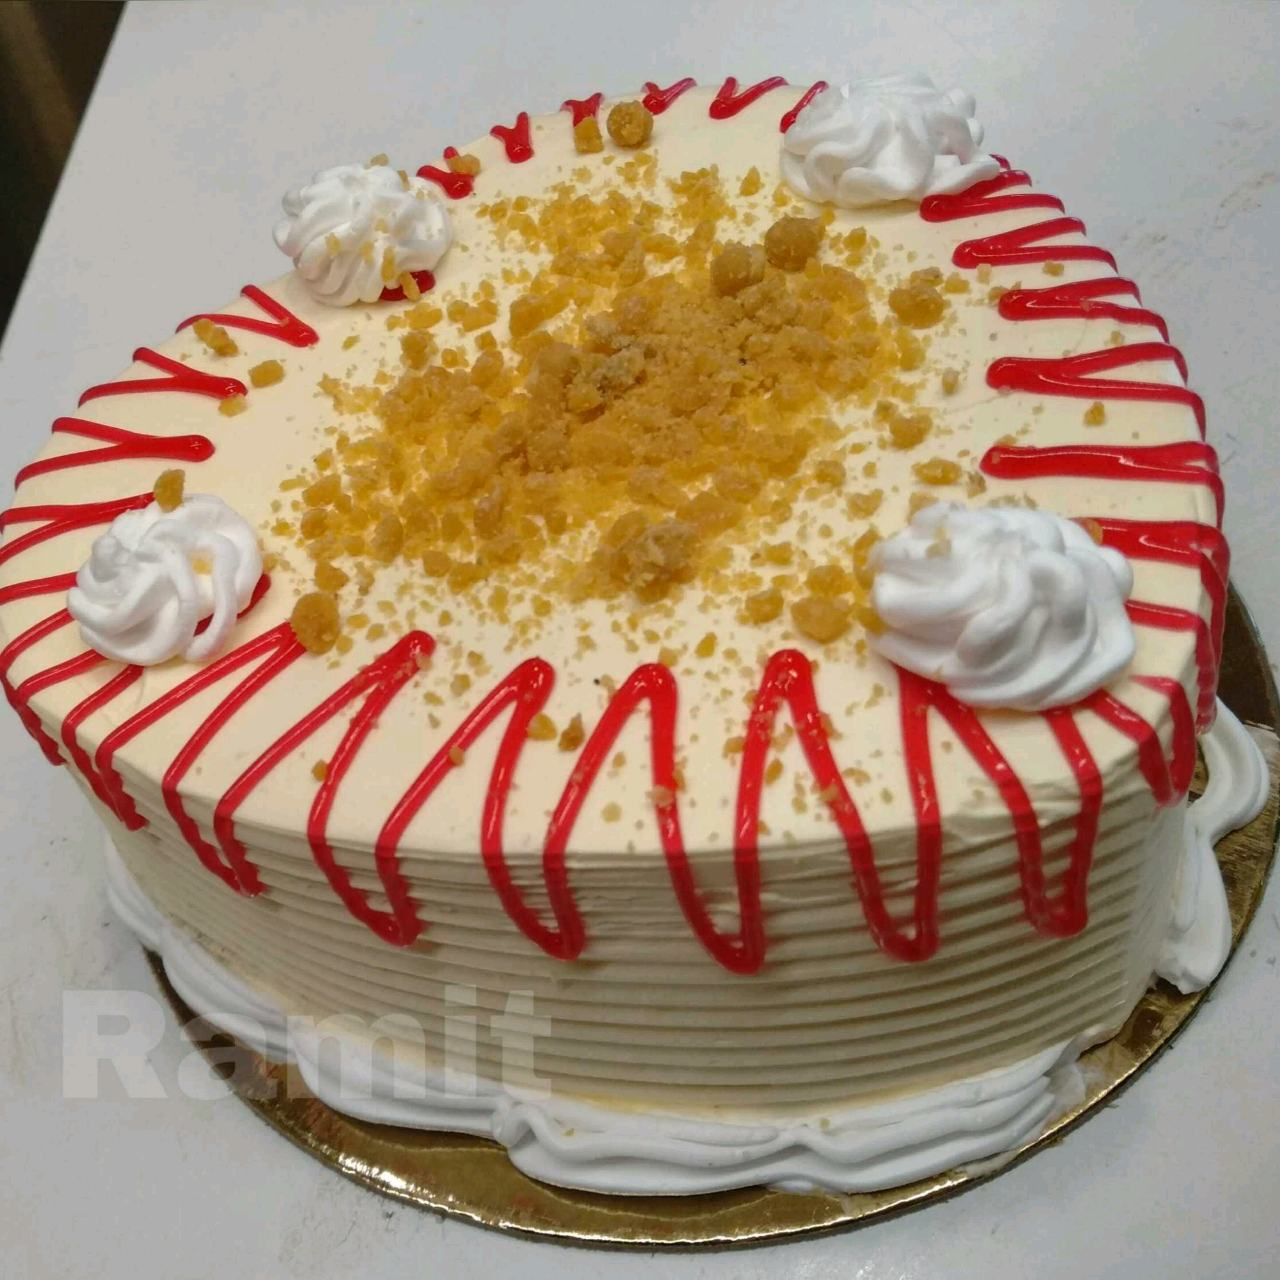 Caramel Crunch Cake Topped With Strawberry Jelly